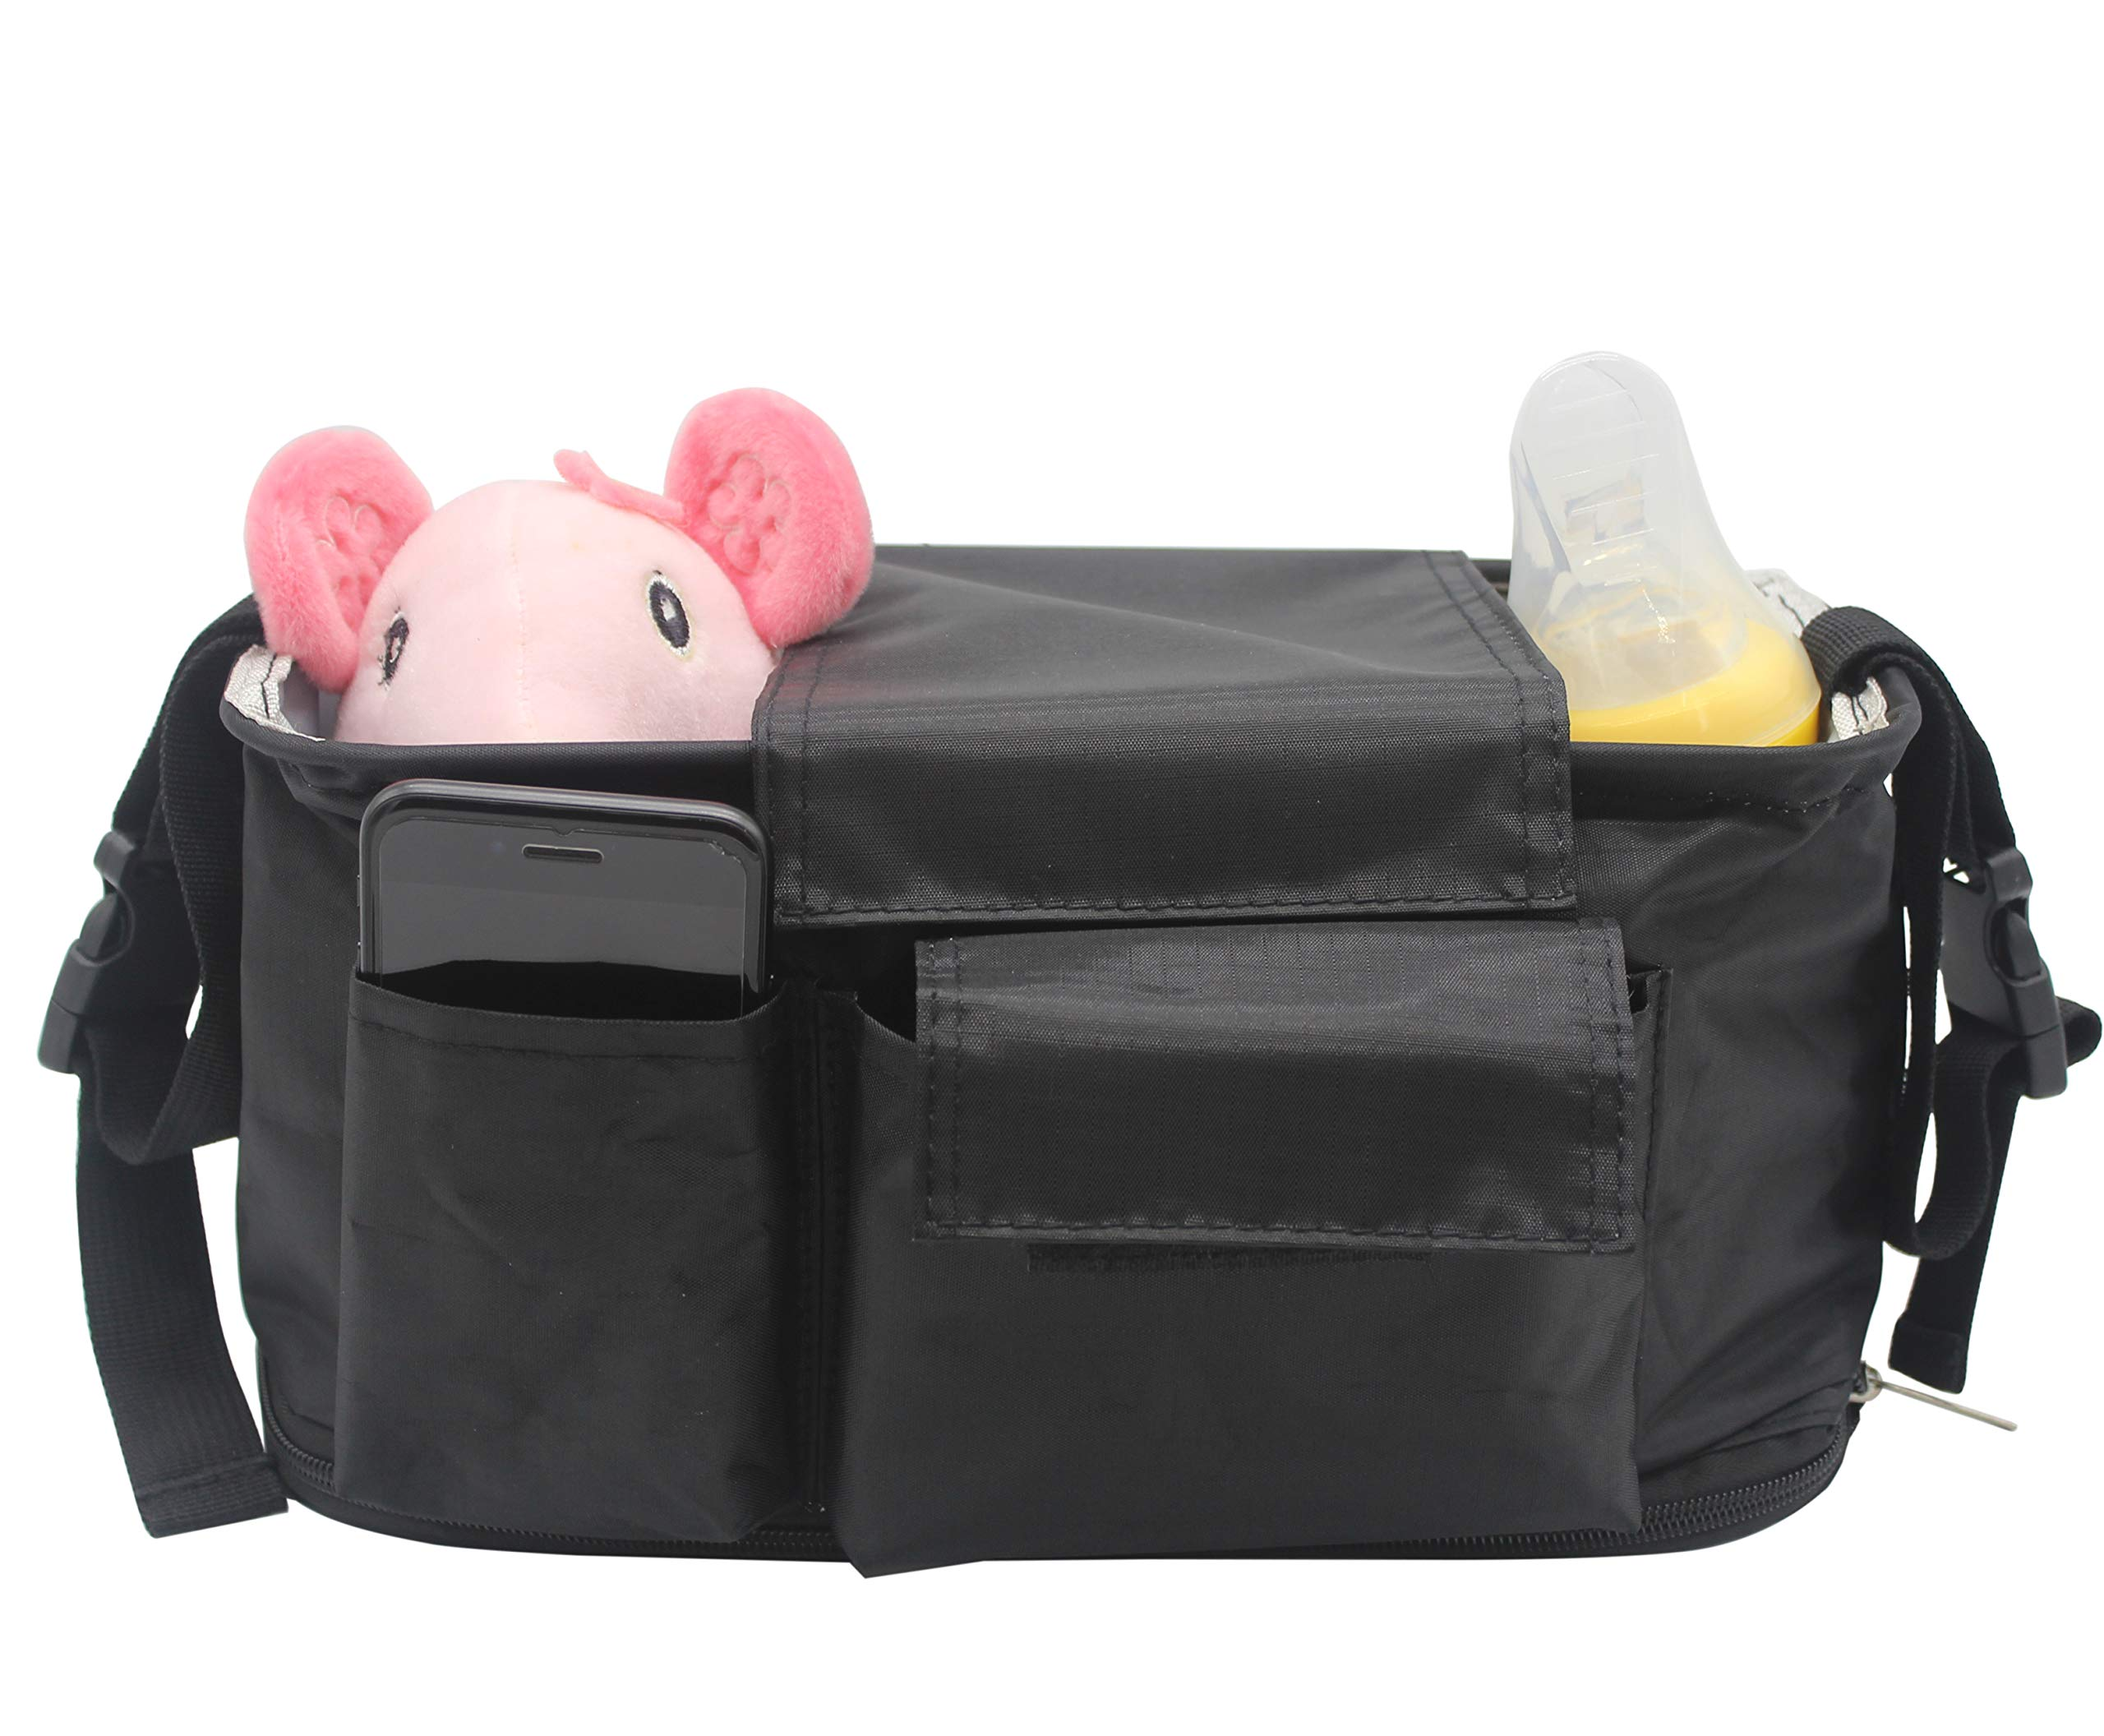 Universal Baby Stroller Organizer Bag   Diaper Bag with Cup Holders and Shoulder Strap Large Storage Space for Phones,Keys,Diapers,Toys Best Stroller Attachment for Smart Moms